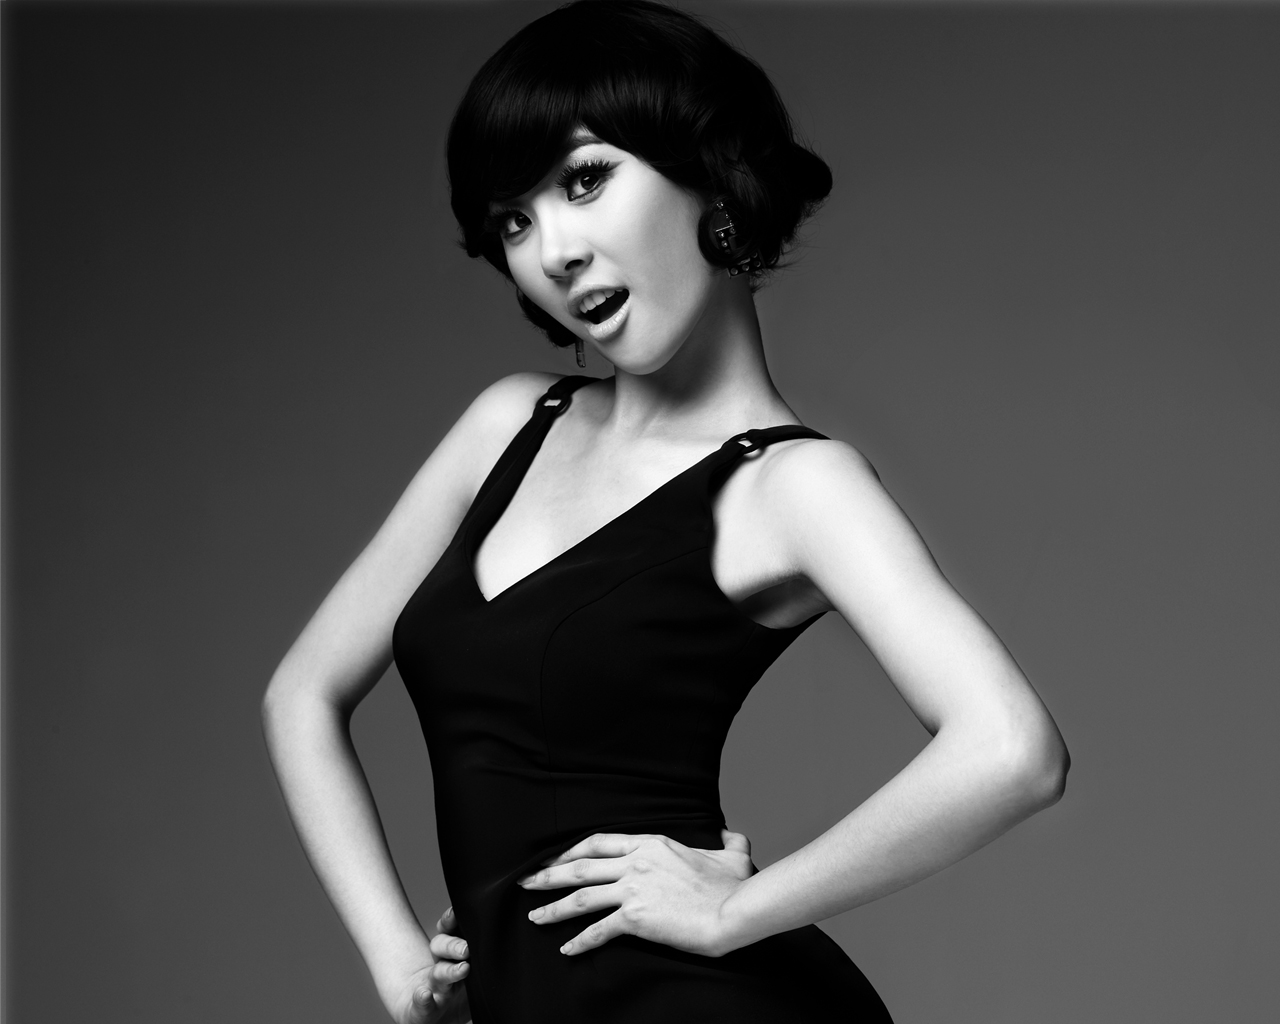 http://wondergirls.files.wordpress.com/2008/10/20089935457sunmi.jpg